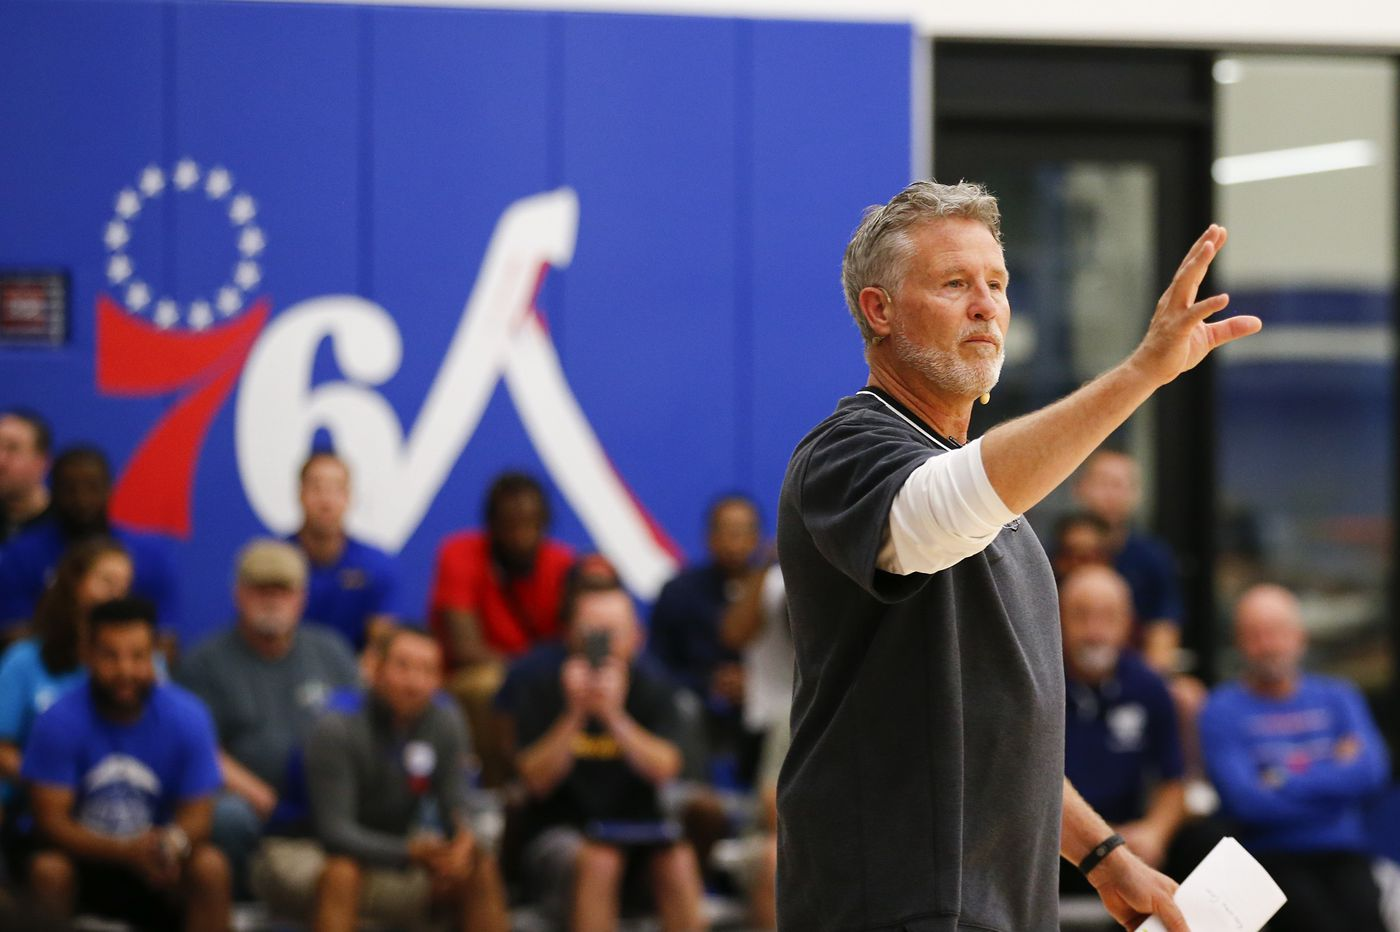 Sixers coach Brett Brown recounts his reaction about the season-ending shot in Toronto